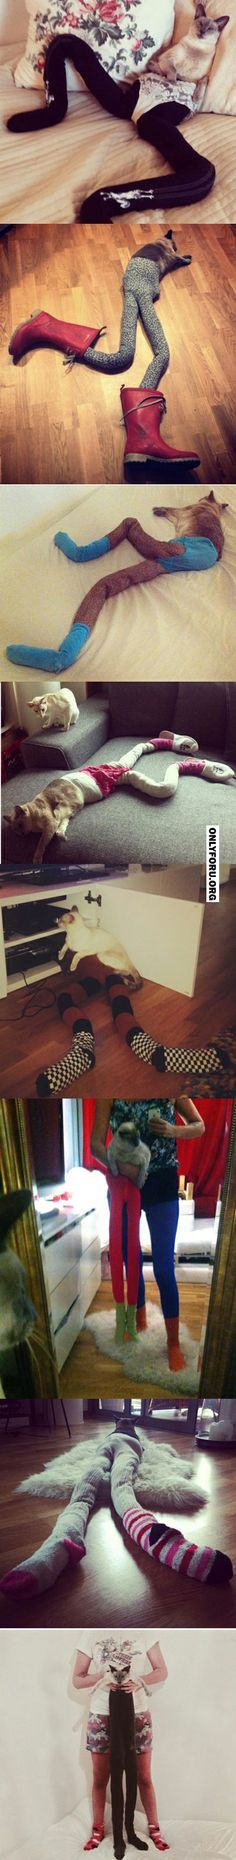 Cats in Tights Are Sew in Right Now - #Funny, #LOL, #Cute, #Fun, #Gif, #wtf, #Troll, #Hilarious, #laugh, #Comics, #meme, #humor, #rofl, #lmfao, #Sexy, #New, #haha,